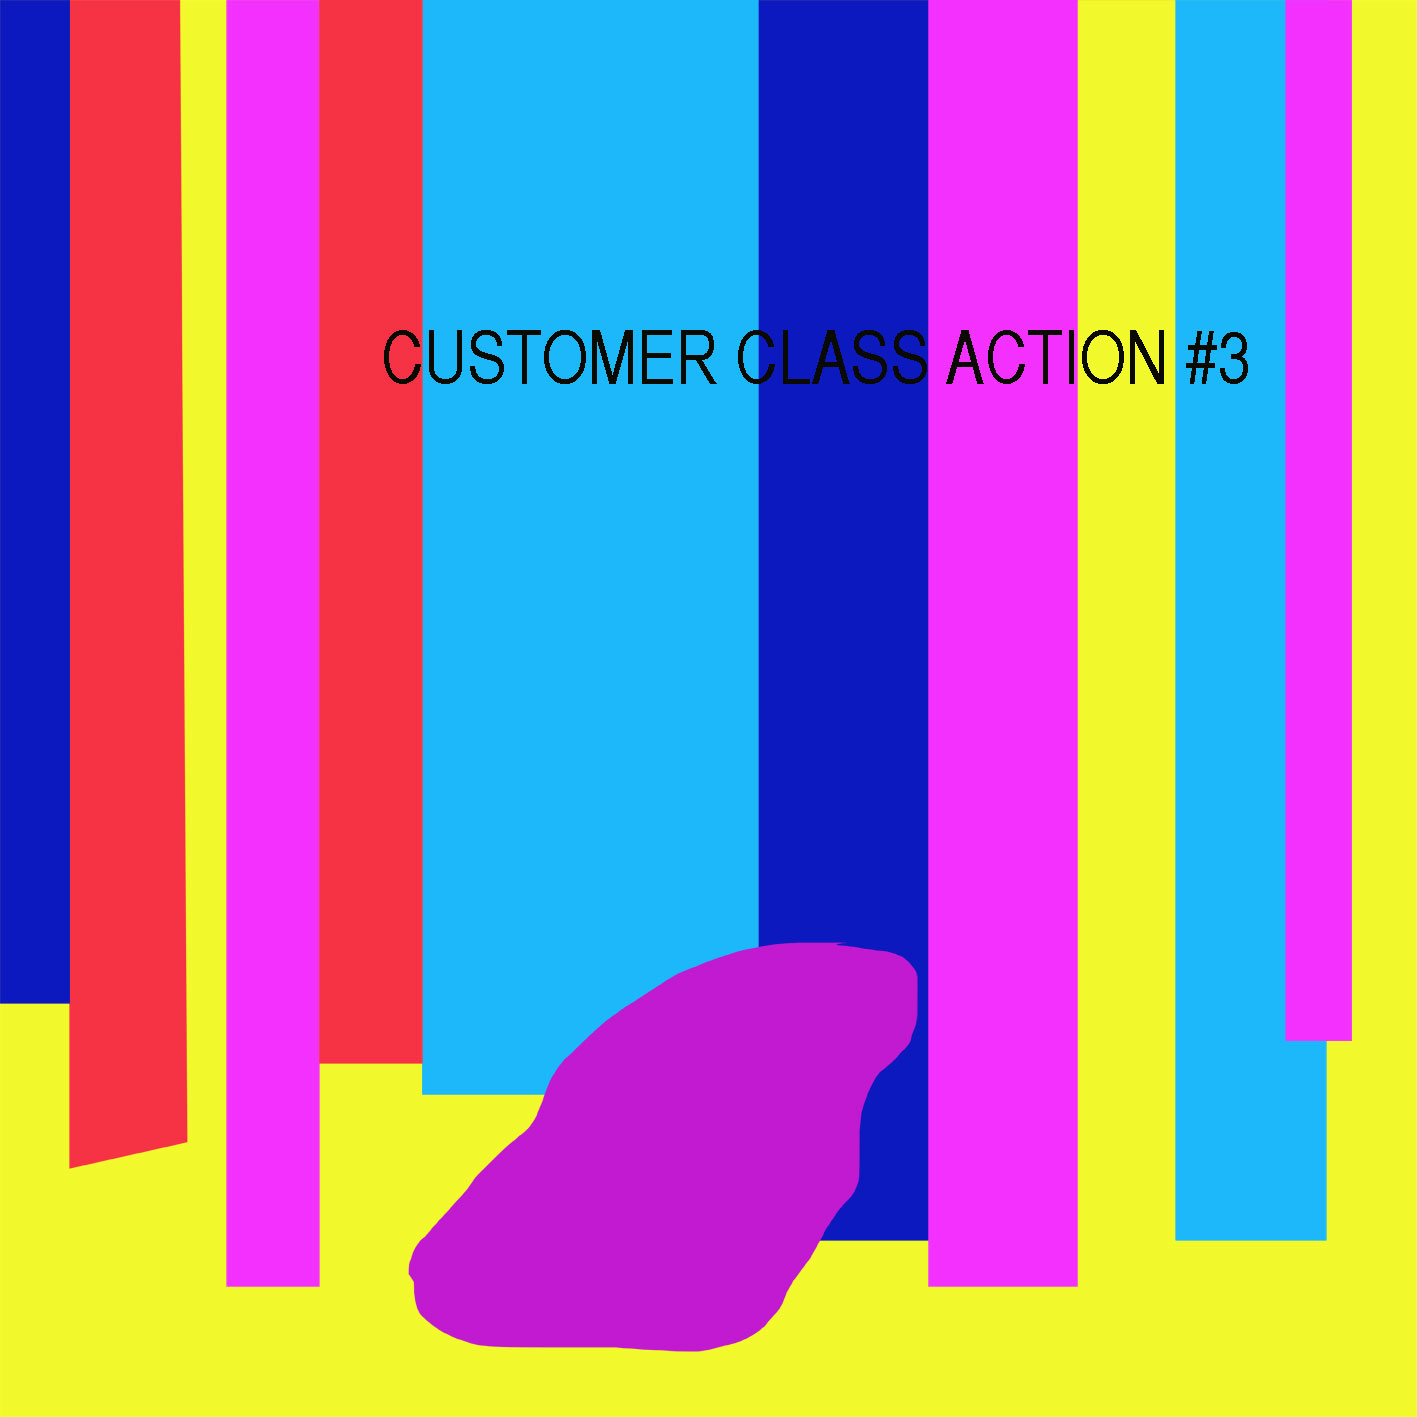 CUSTOMER CLASS ACTION 3